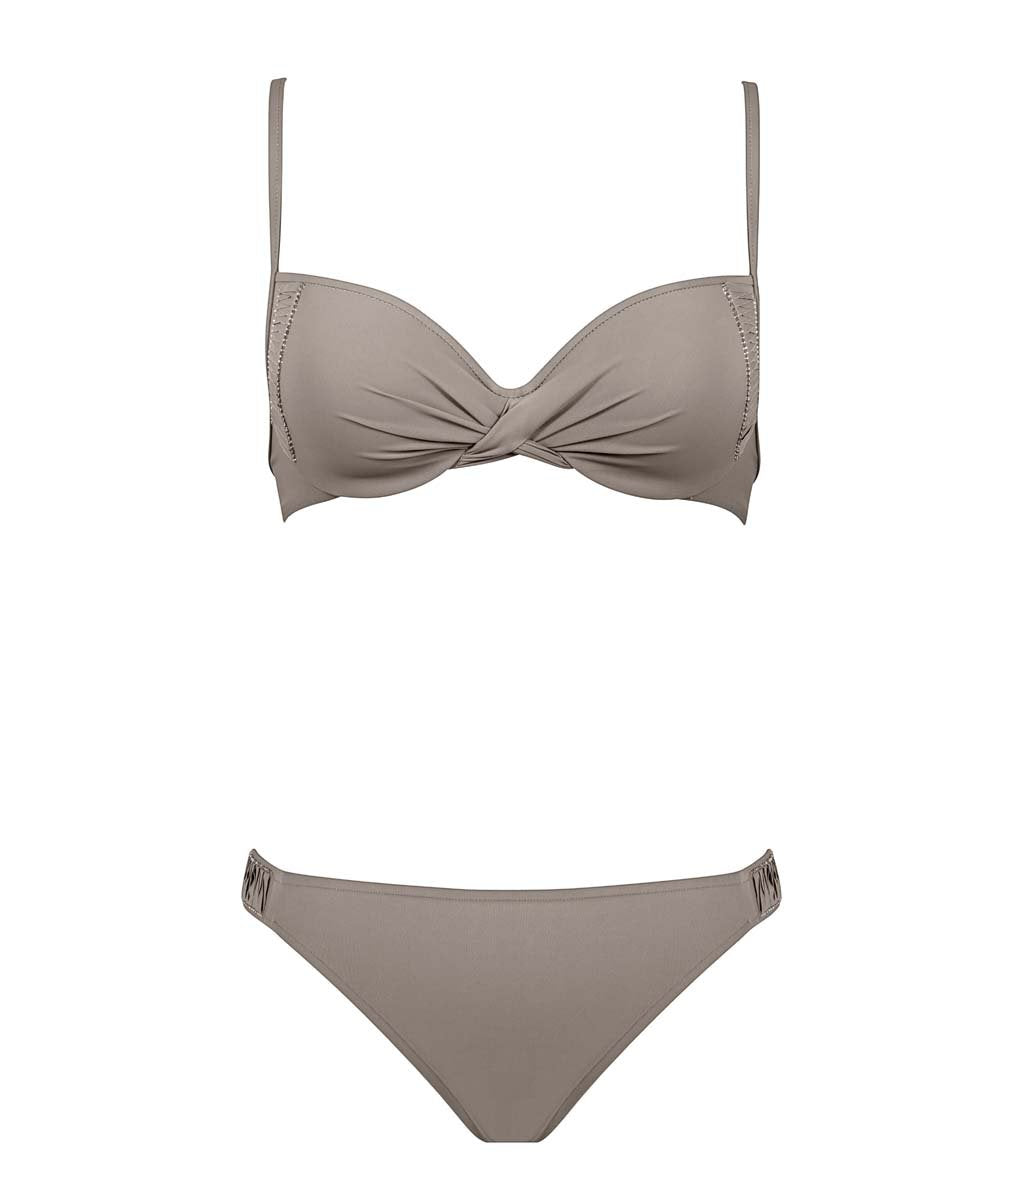 Maryan Mehlhorn 'Allure' (Taupe Cristal) Underwired Bikini - Sandra Dee - Product Shot - Front